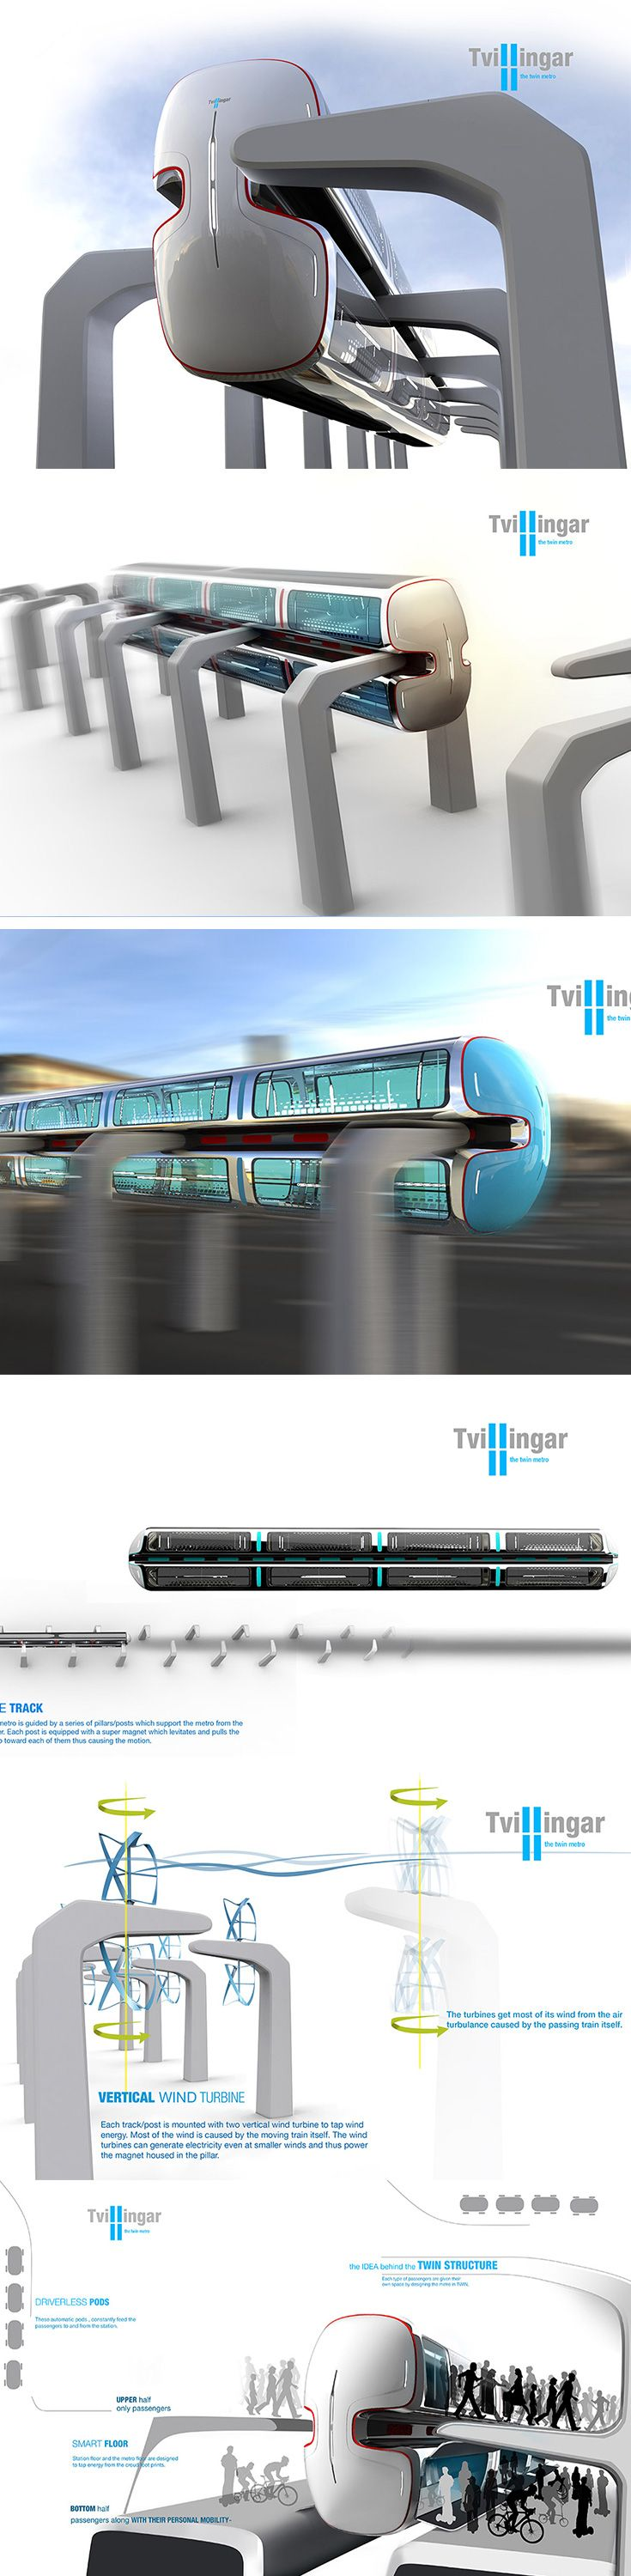 Tvillingar is a literal twist on the metro train that flips the archetypical station and maglev halfway upside down! Unlike classic designs where the cars sit on top of a track, the inverted train is secured on the side and levitated with super magnet tech between its upper and lower decks. This requires a unique column rail system to support and elevate the double decker train above ground.